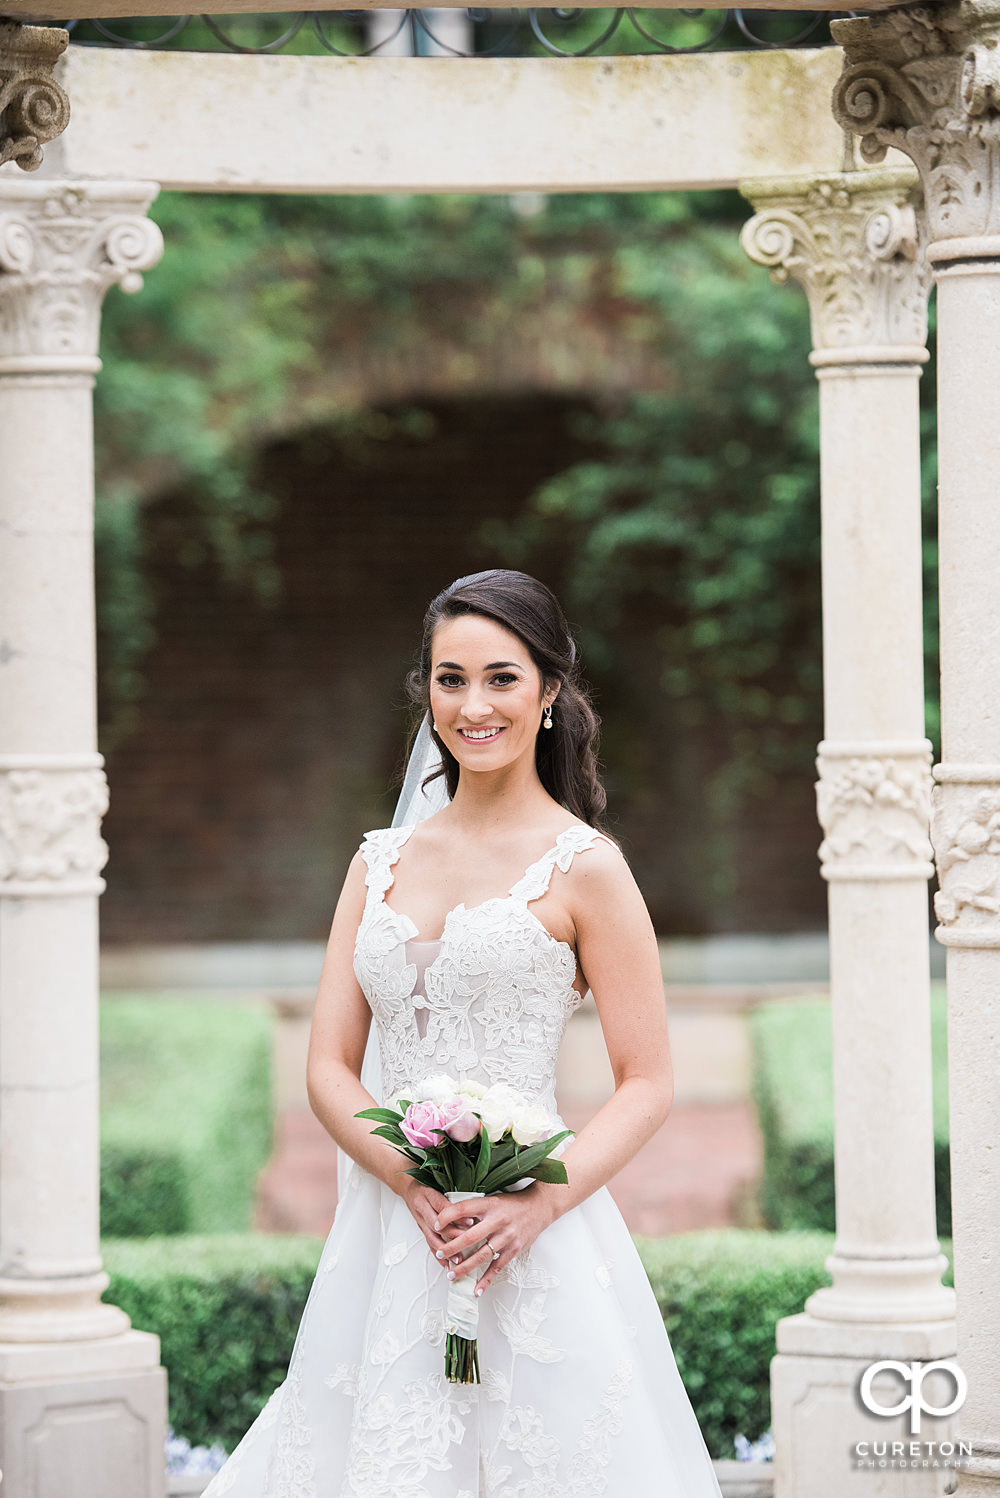 Bride smiling under the gazebo at Furman University.